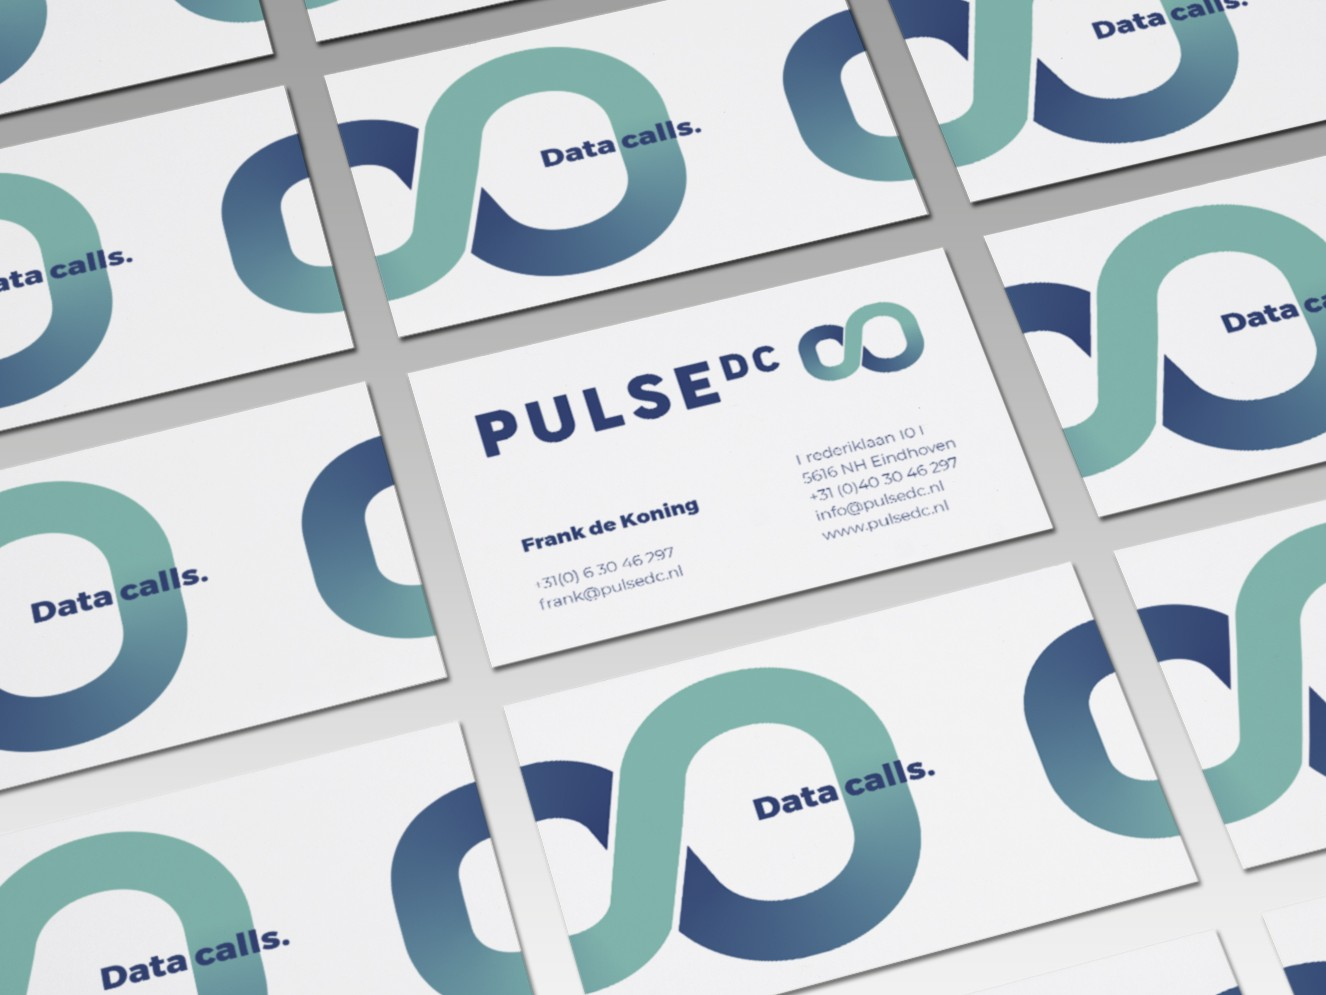 PulseDC business cards